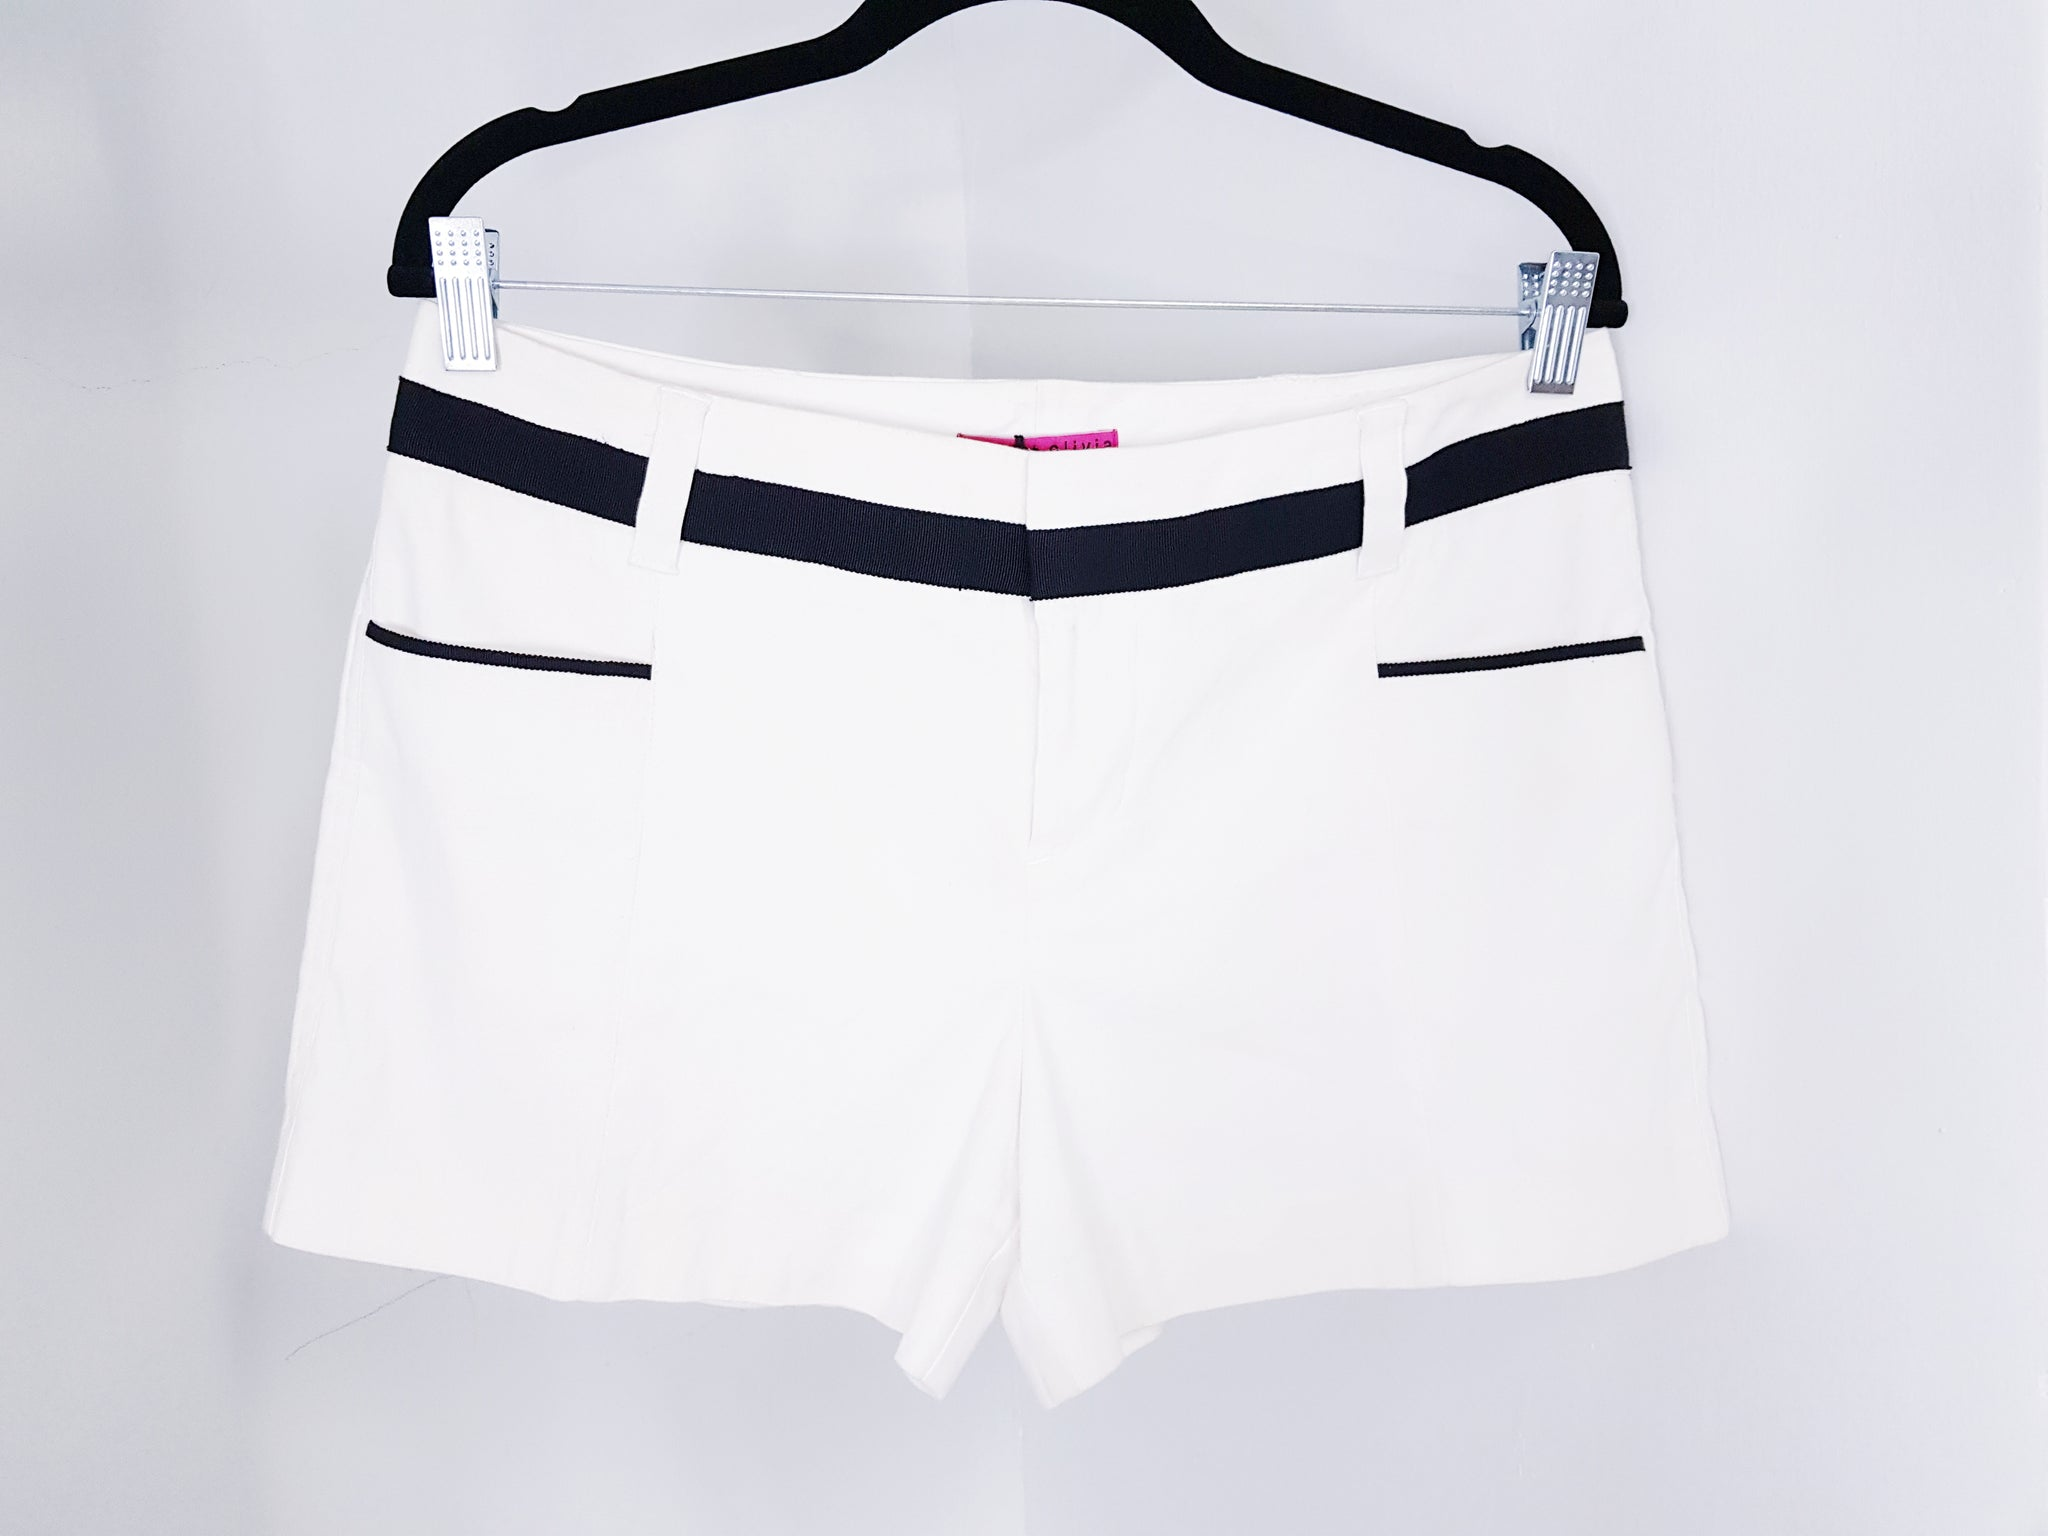 Alice & Olivia White Shorts with Black details